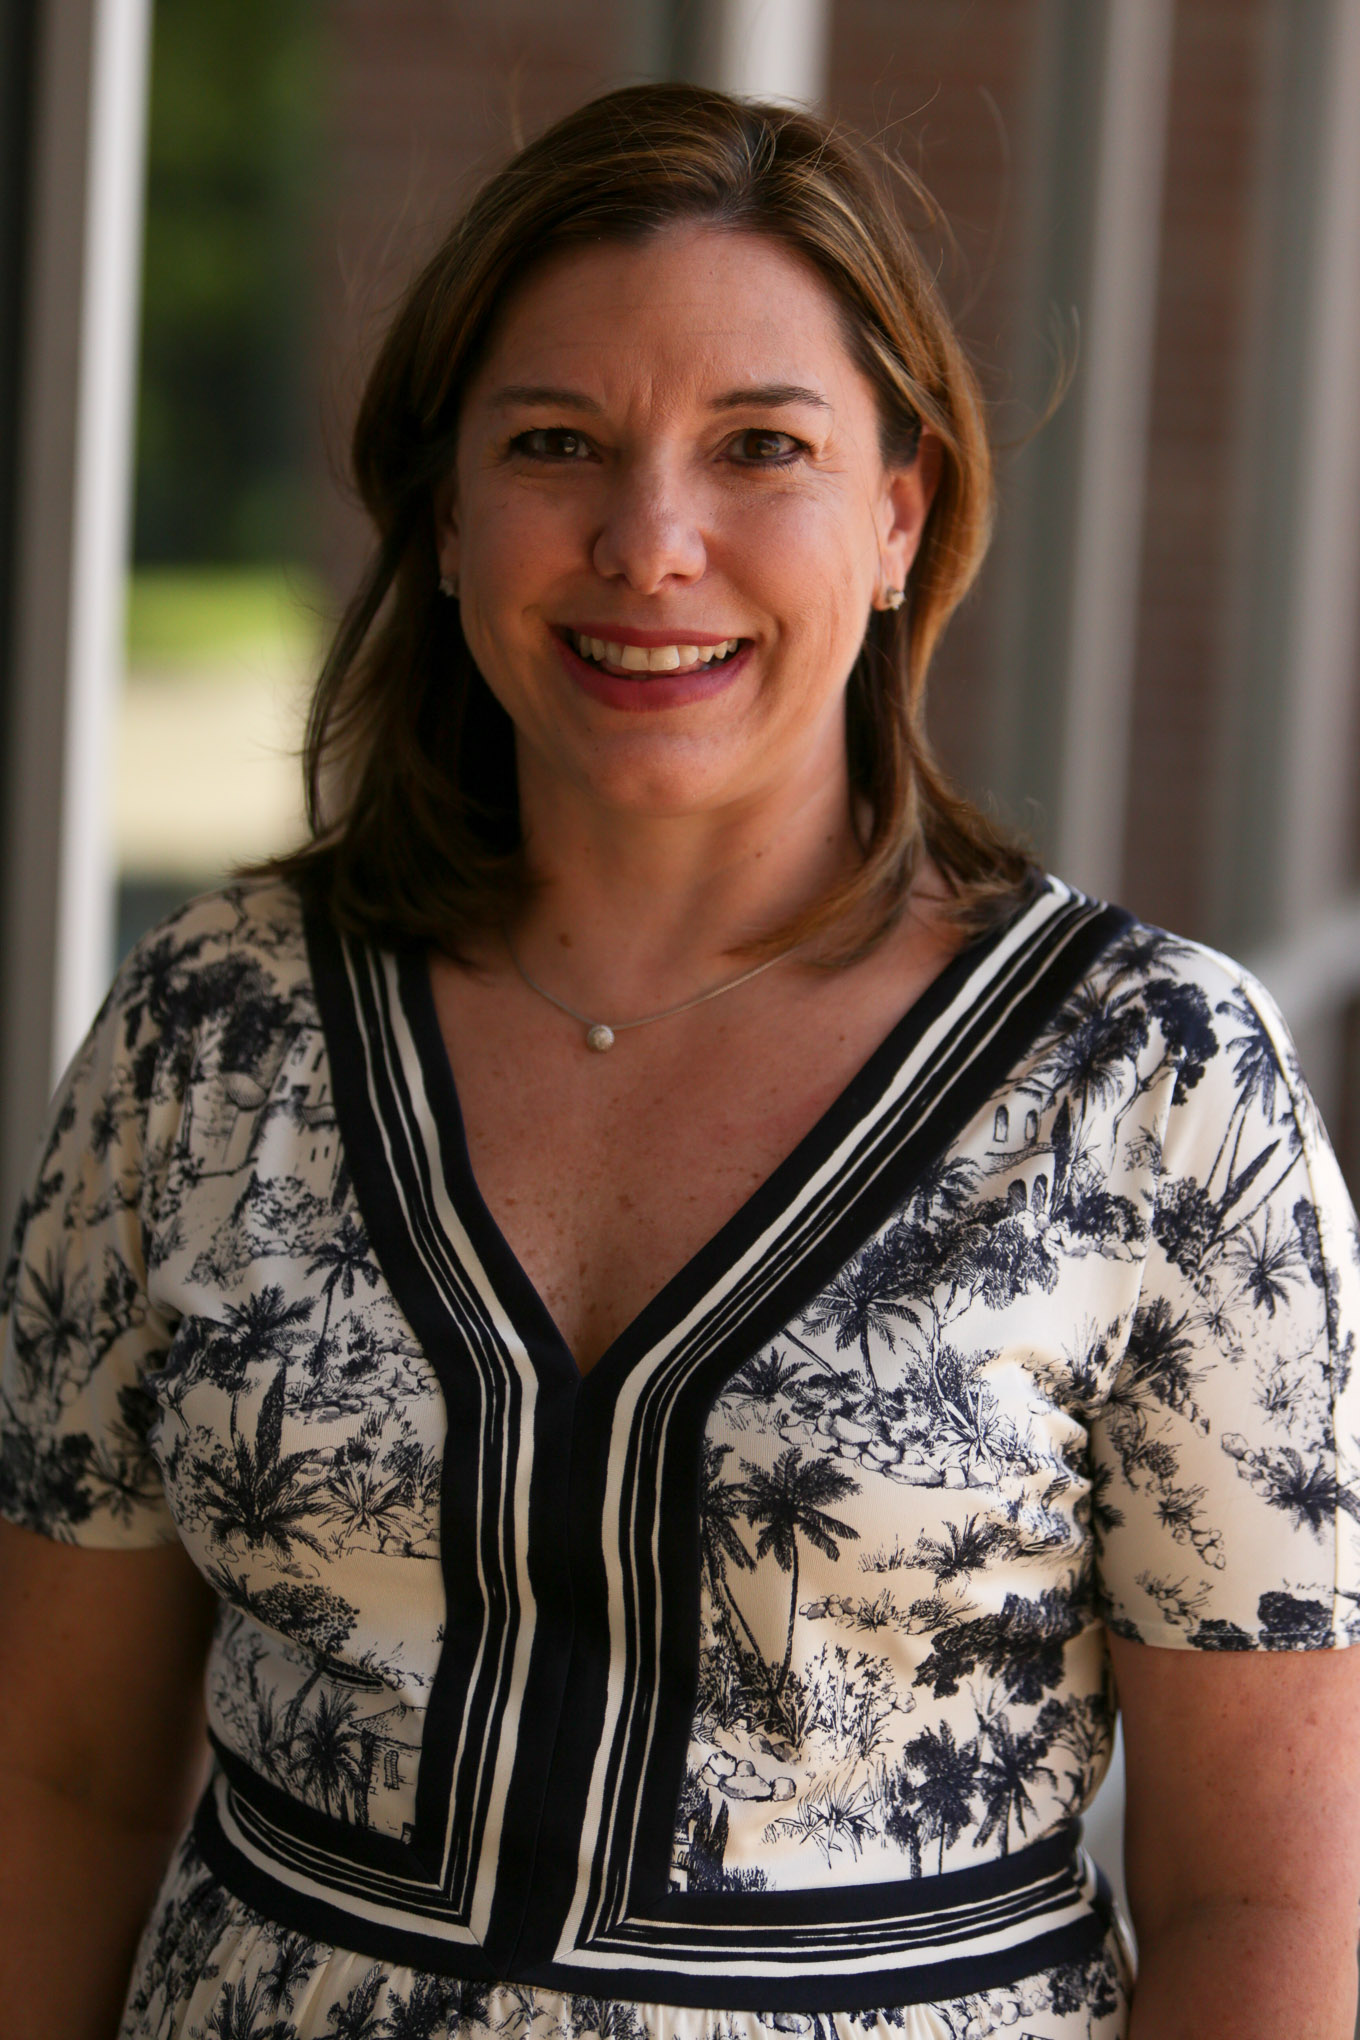 Our Lady of the Lake University Education Department Chair Alycia Maurer.